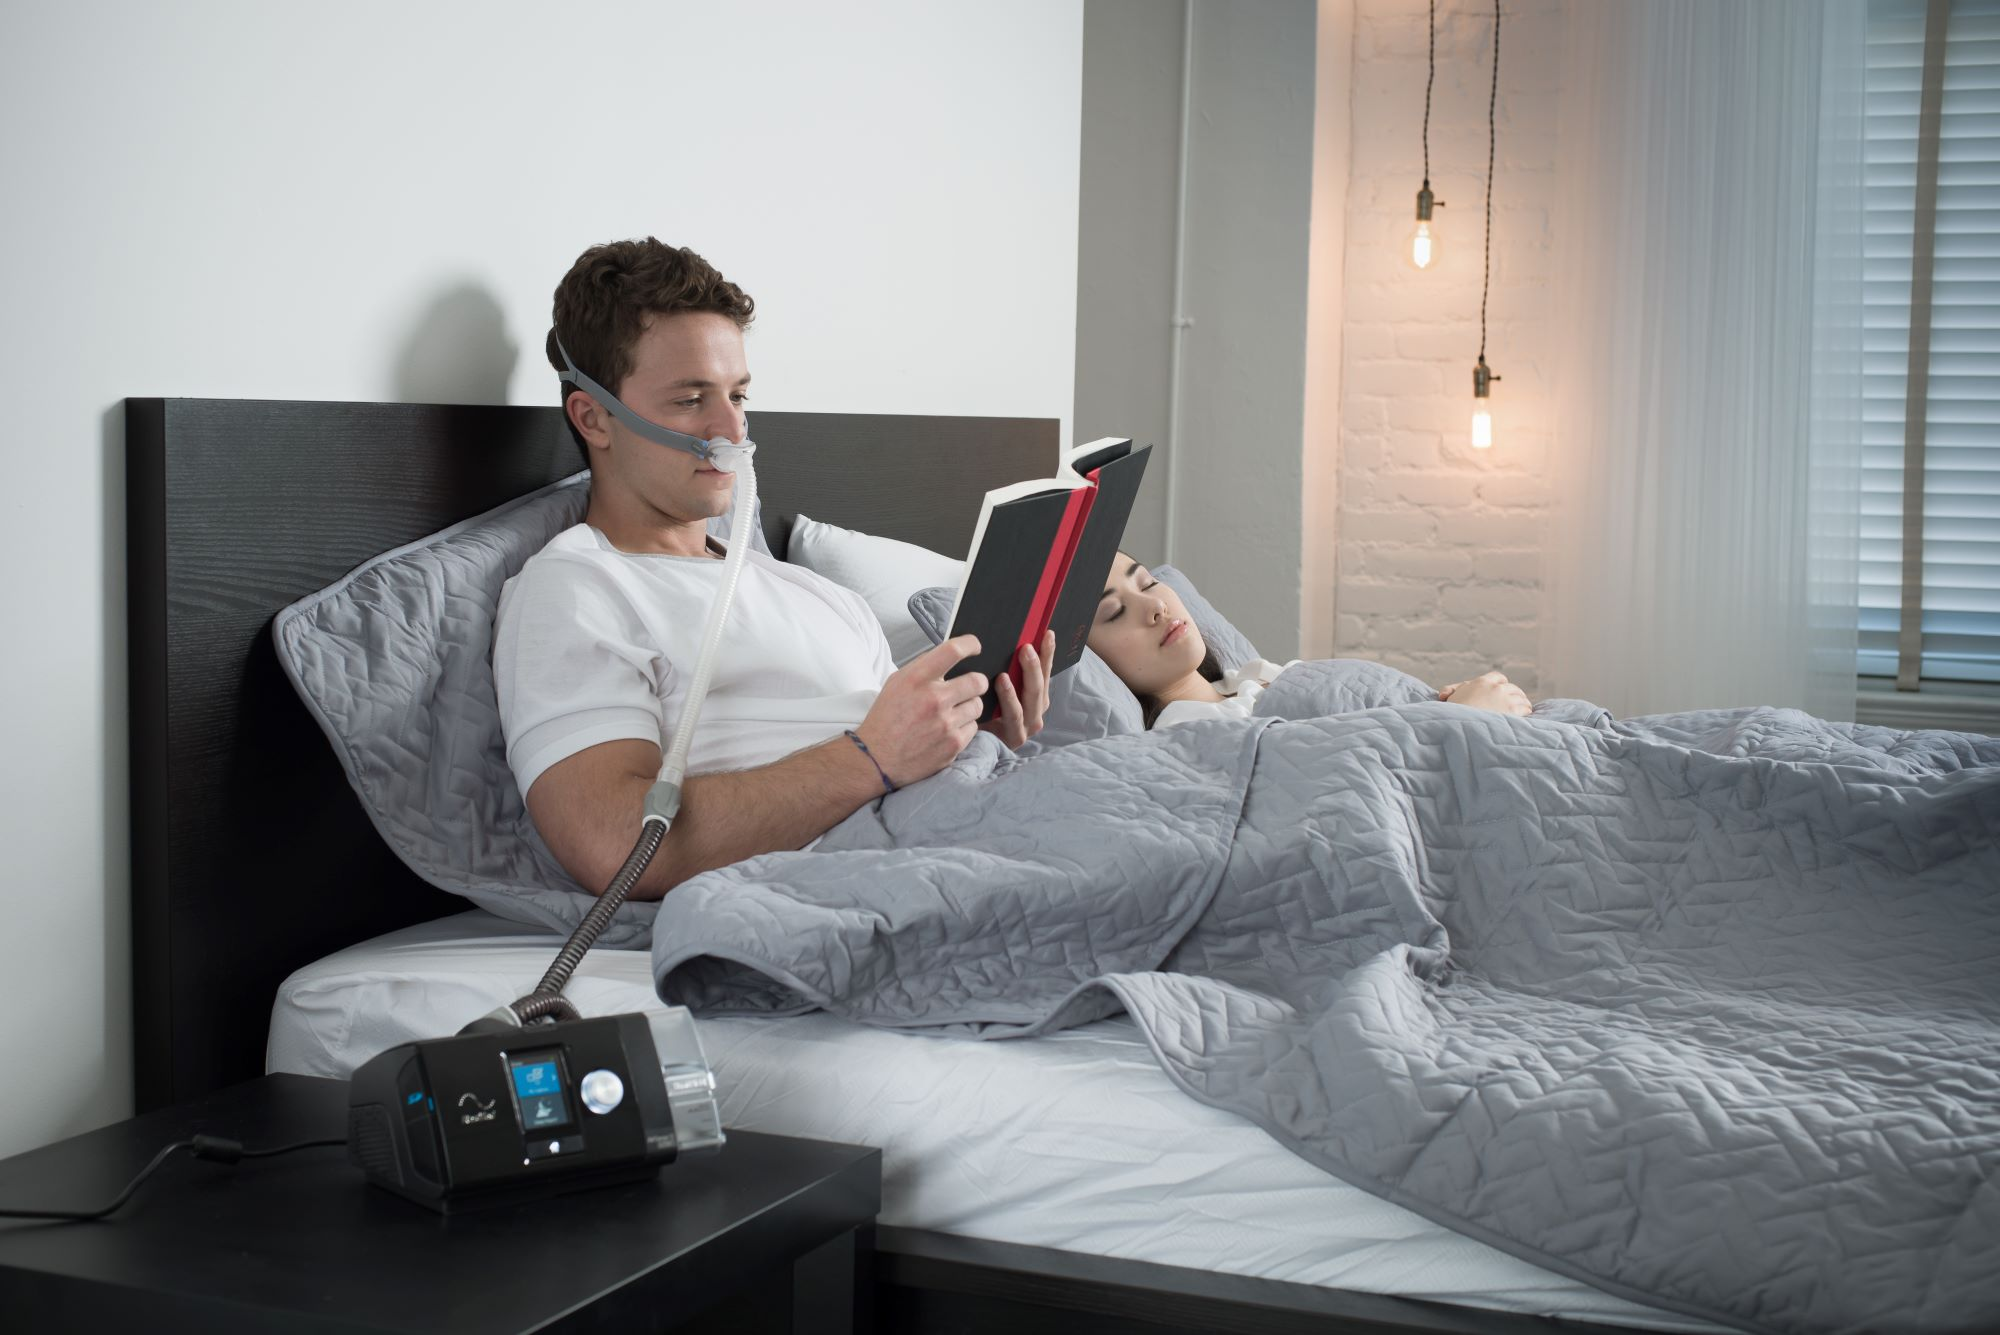 P10 mask connected to airsense 10 cpap machine; cpap mask type is nasal pillow